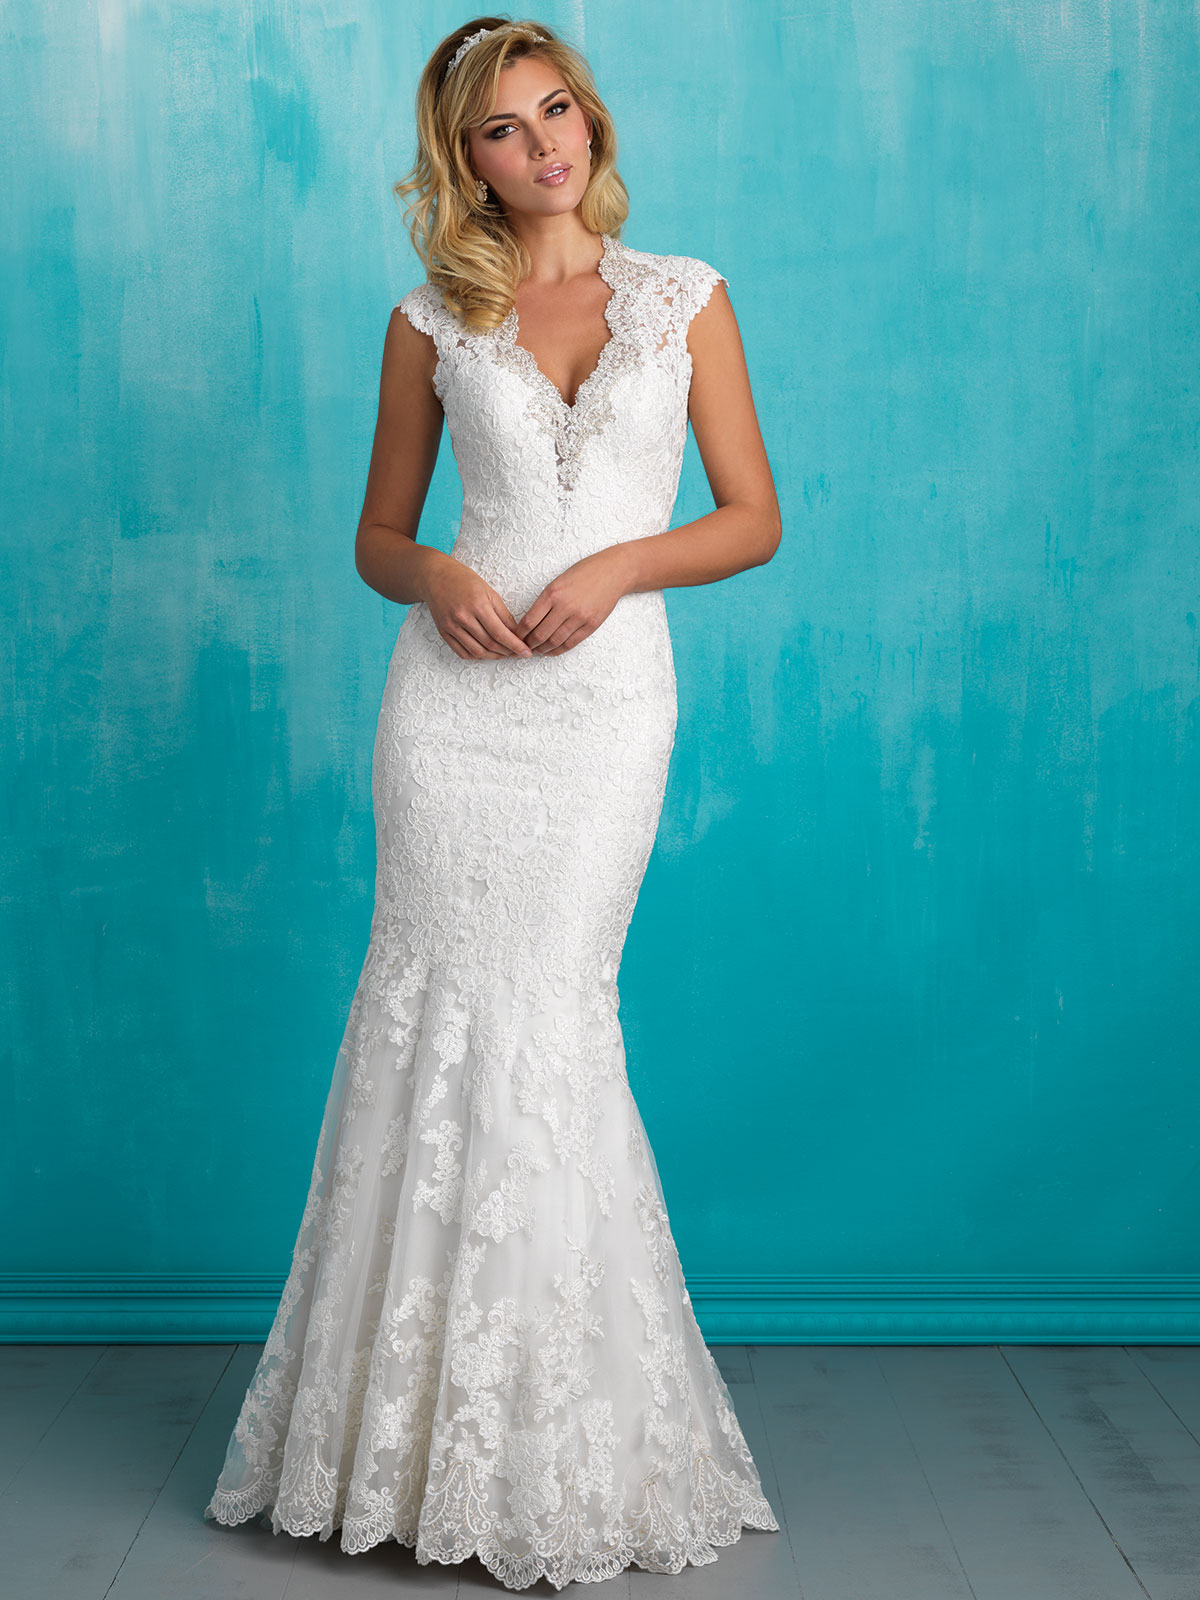 Allure 9318 V-neck Lace Sheath Bridal Dress|DimitraDesigns.com